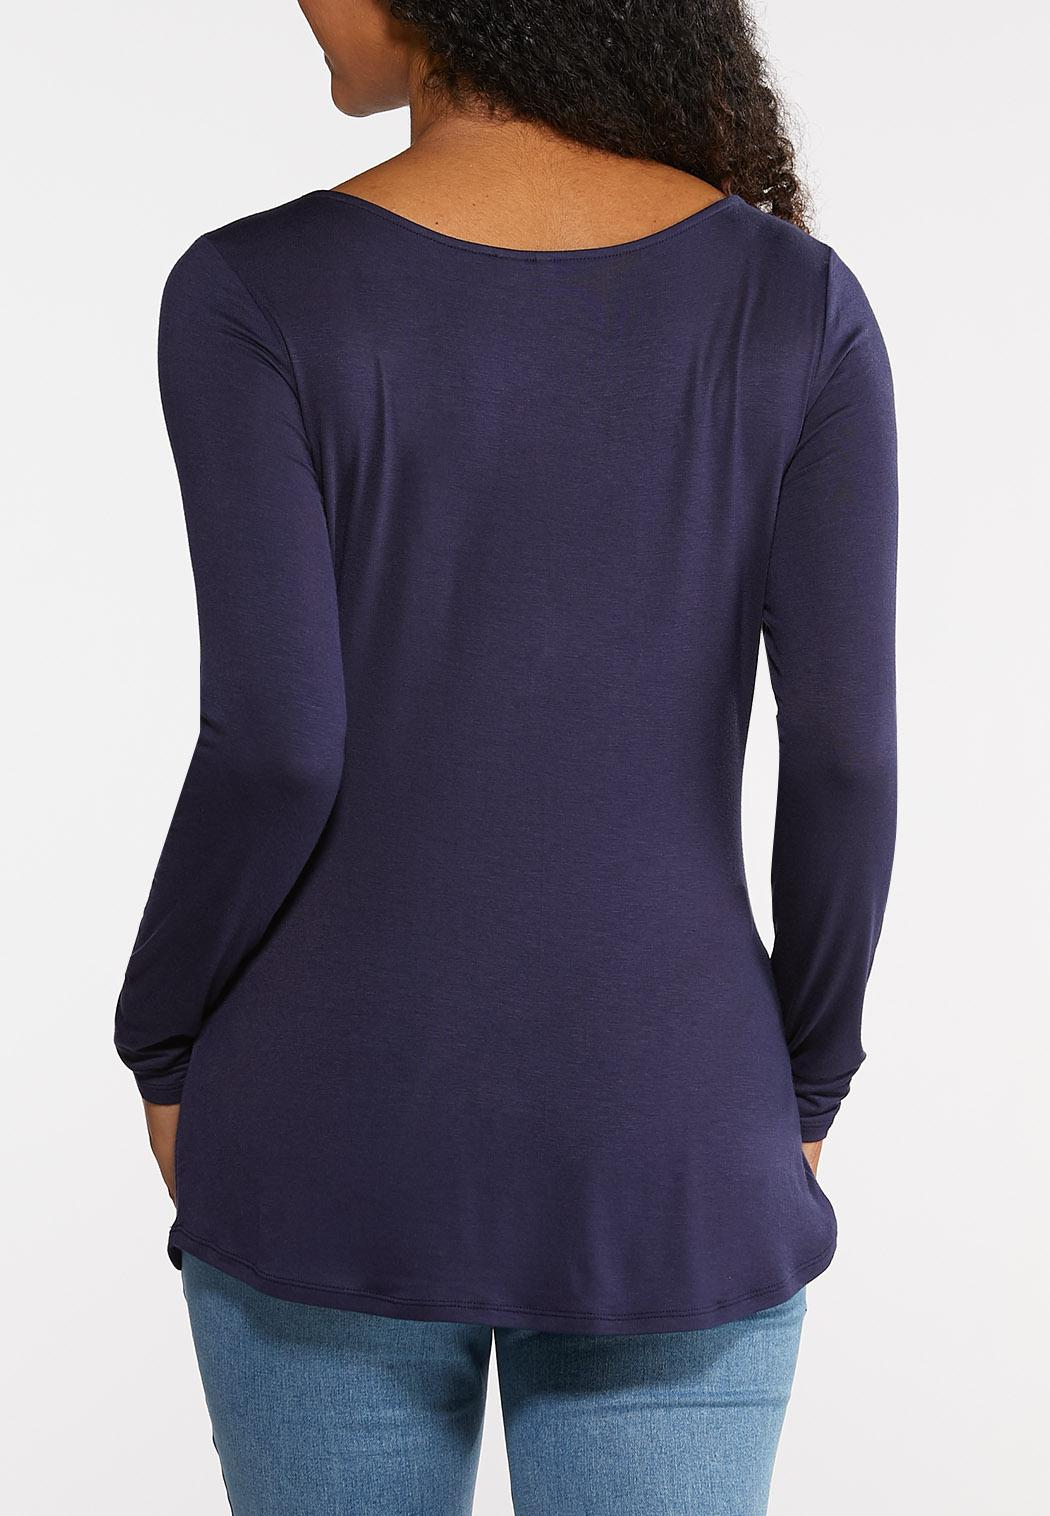 Plus Size Solid Long Sleeve Tee (Item #43968322)